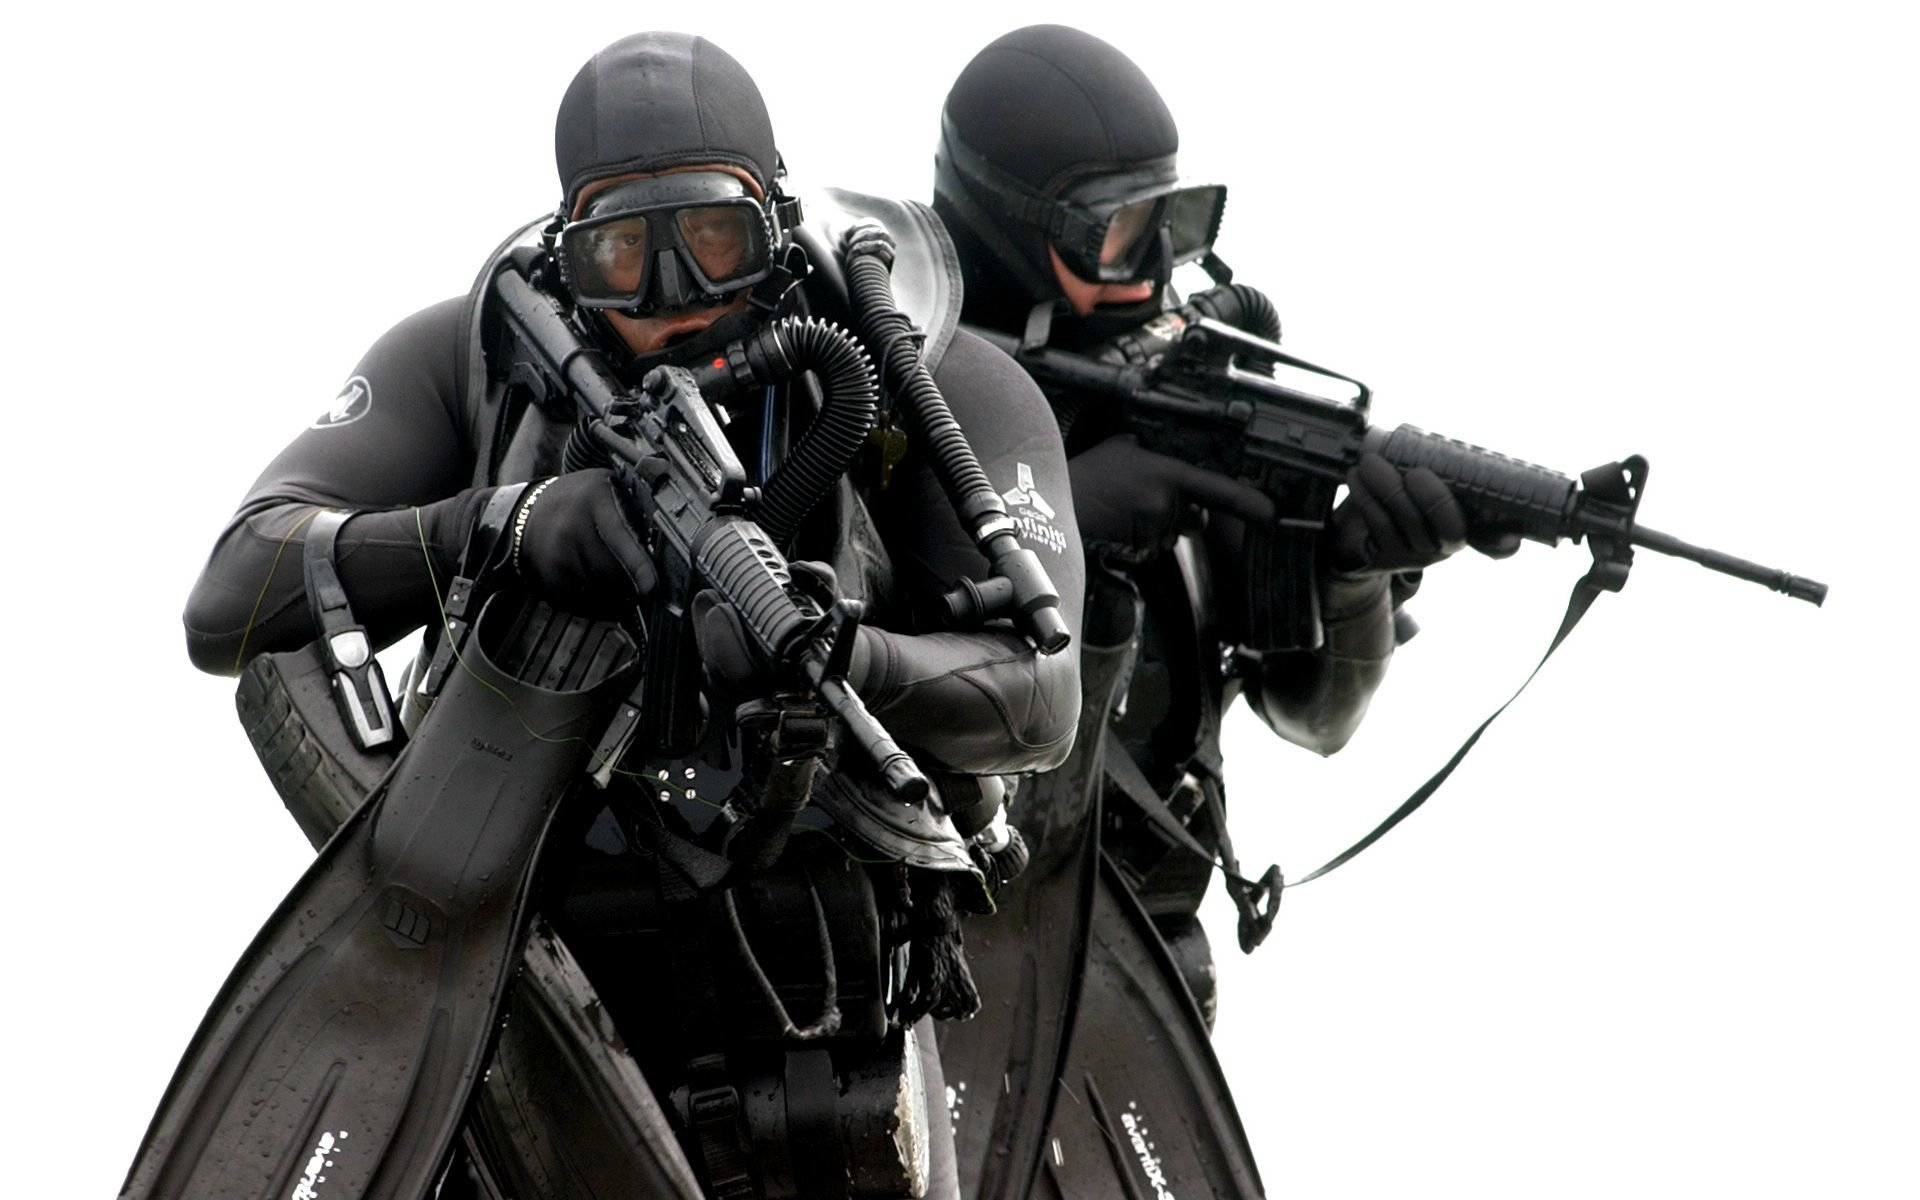 Navy seal wallpapers hd for desktop backgrounds best navy seal wallpaper id495659 for high resolution hd 1920x1200 computer thecheapjerseys Choice Image